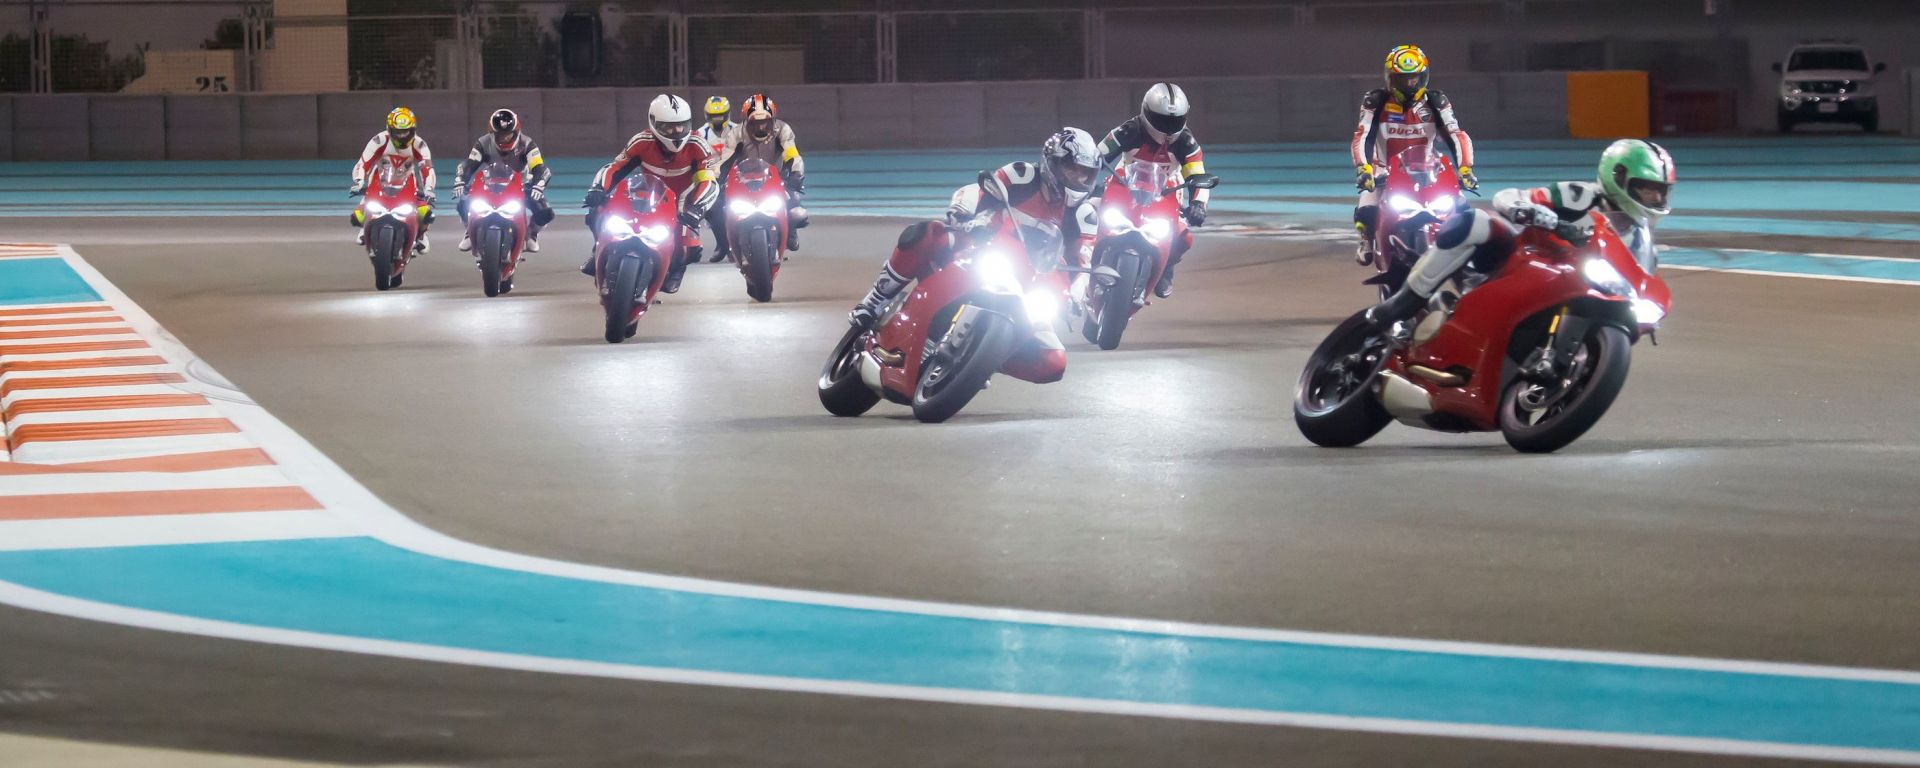 Ducati Riding Experience: tappa speciale in Bahrain